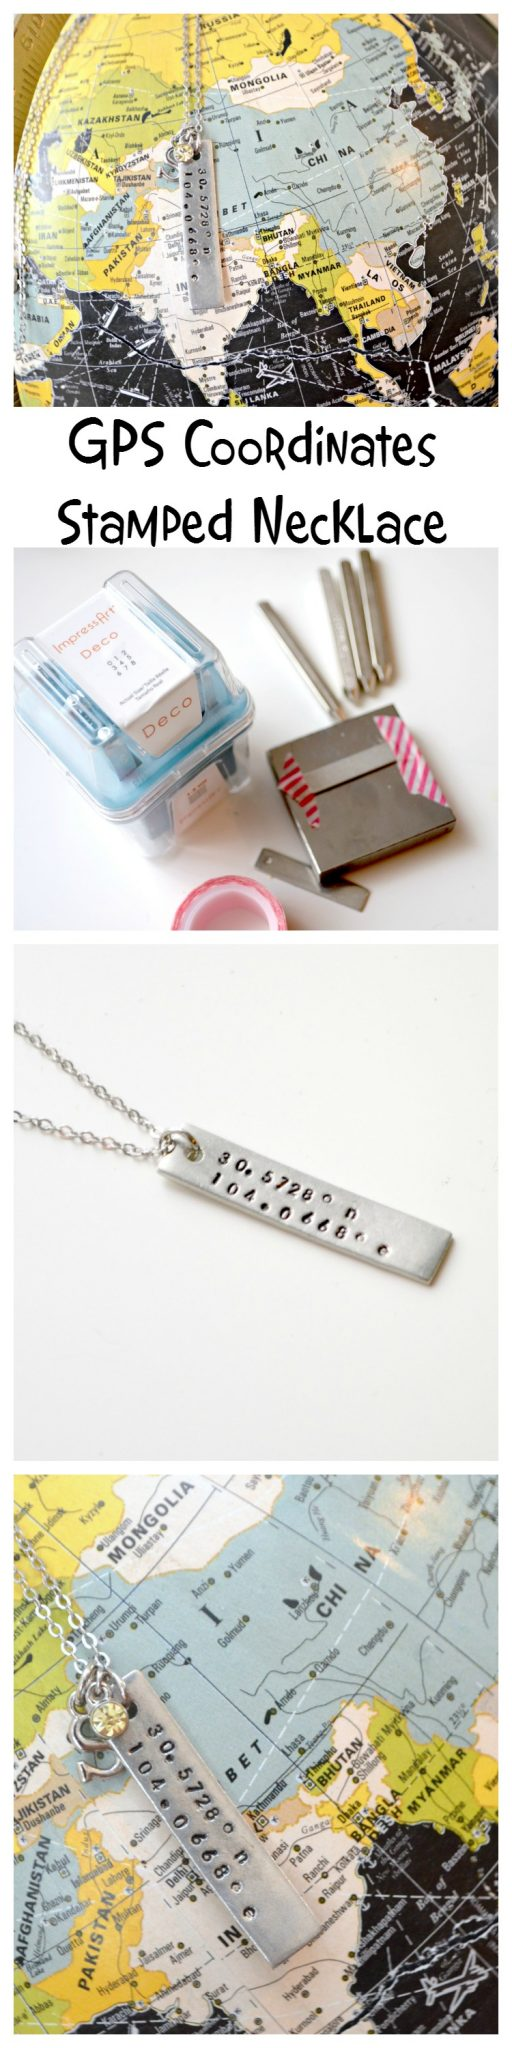 GPS Coordinates Stamped Necklace